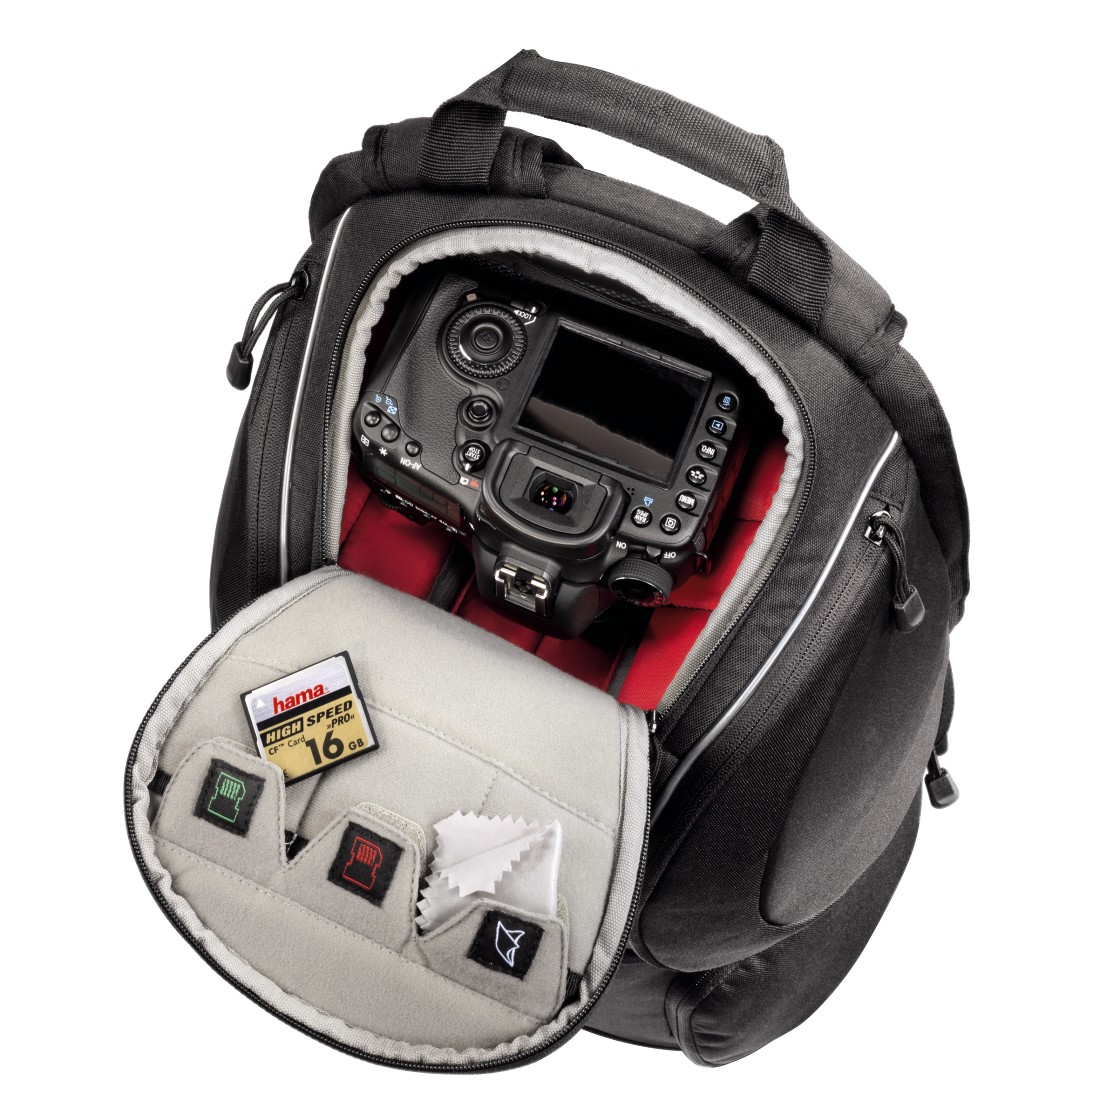 awx8 High-Res Appliance 8 - Hama, Daytour Camera Backpack, 180, black